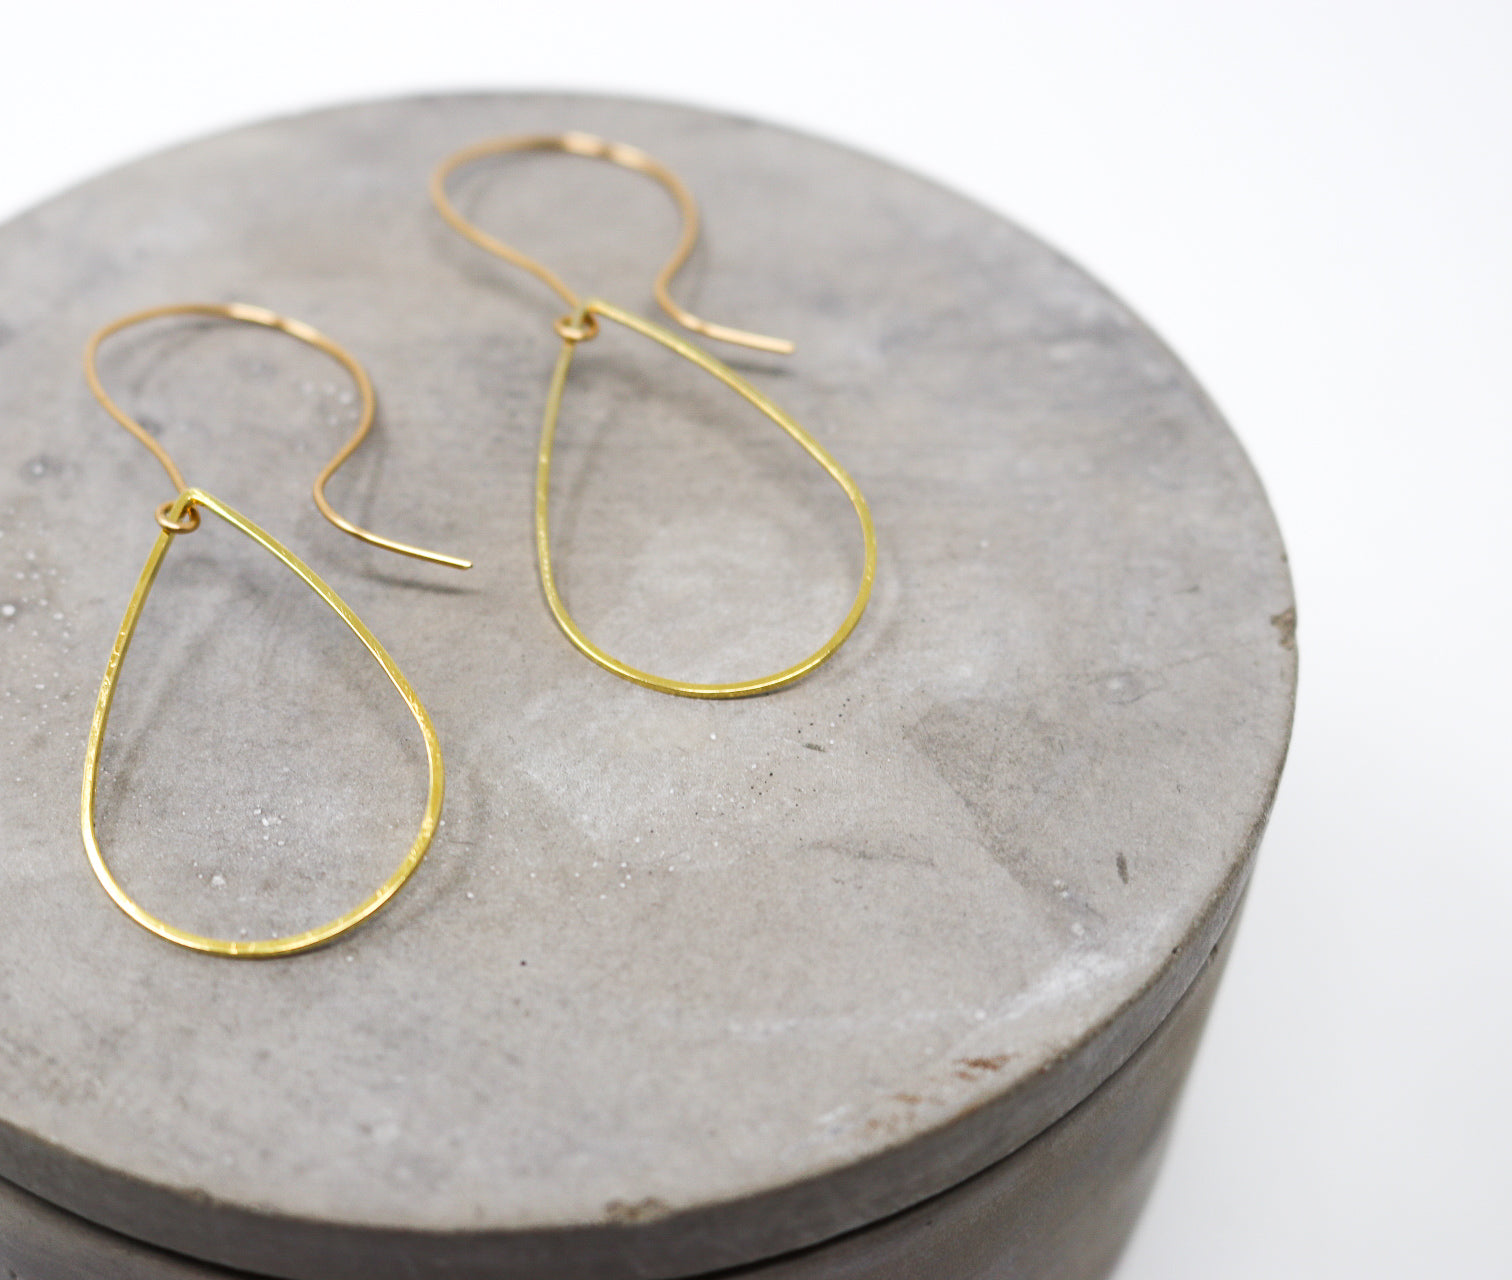 TEAR Earrings - Twisted Silver Jewelry